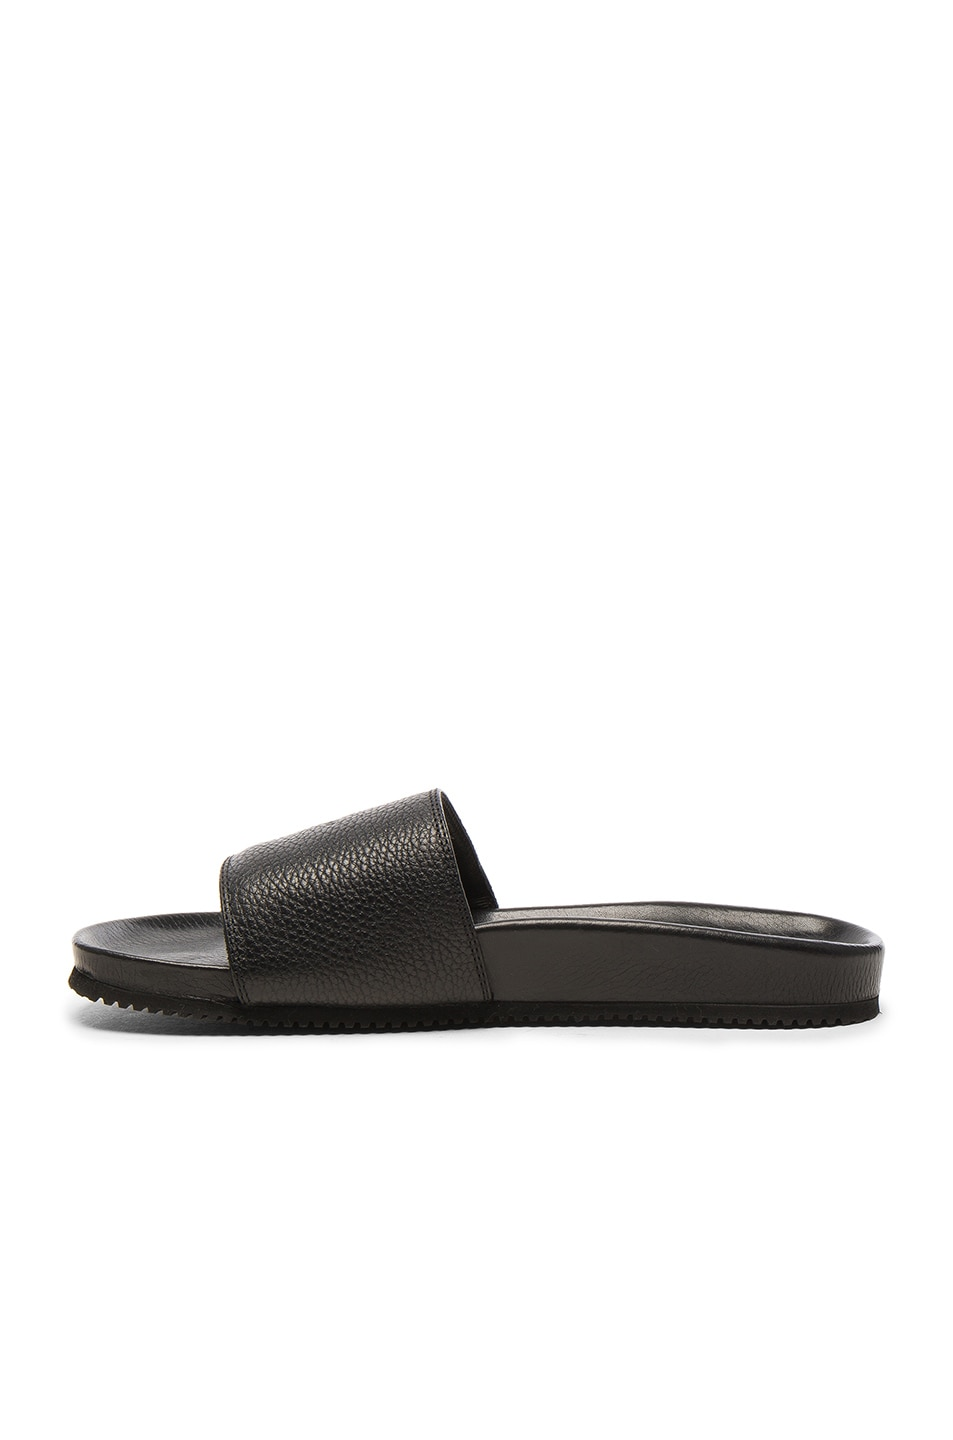 Image 4 of Buscemi Leather Classic Slide Sandals in Black